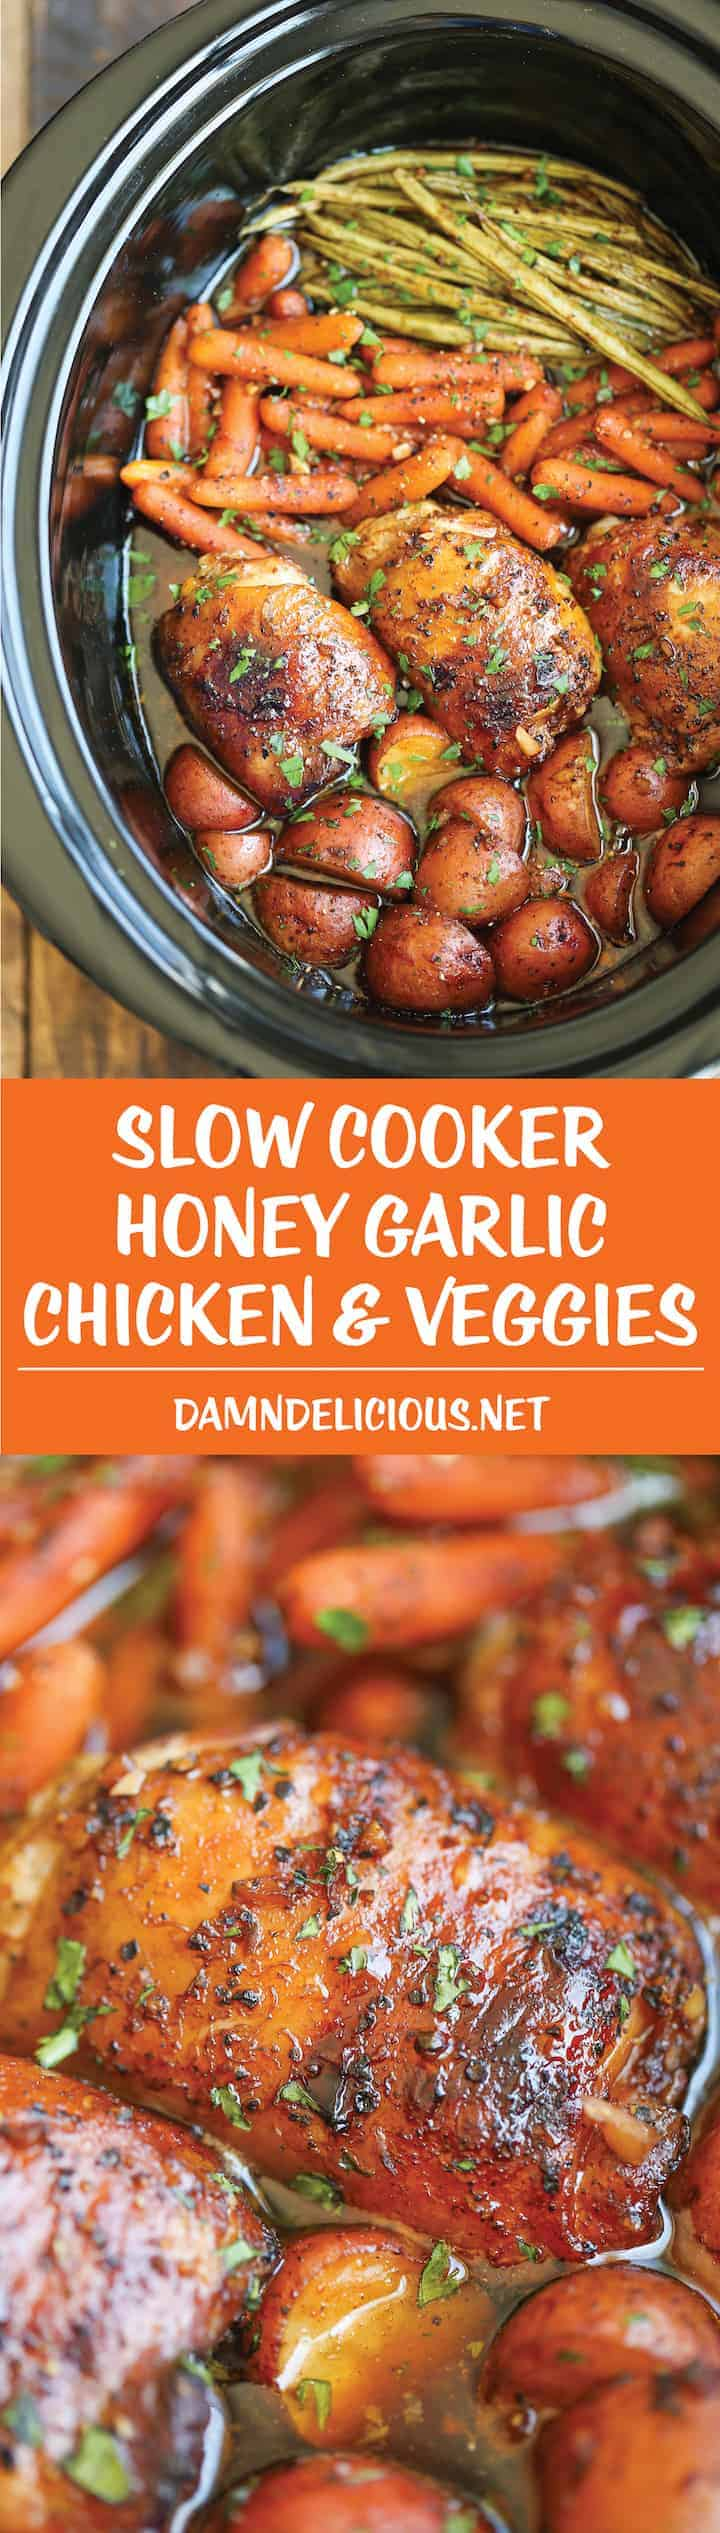 This is a great list of slow cooker chicken recipes that I am dying to try! Worth pinning for later! #chicken #slowcooker #slowcookerchickenrecipes #slowcookerrecipes #chickenrecipes